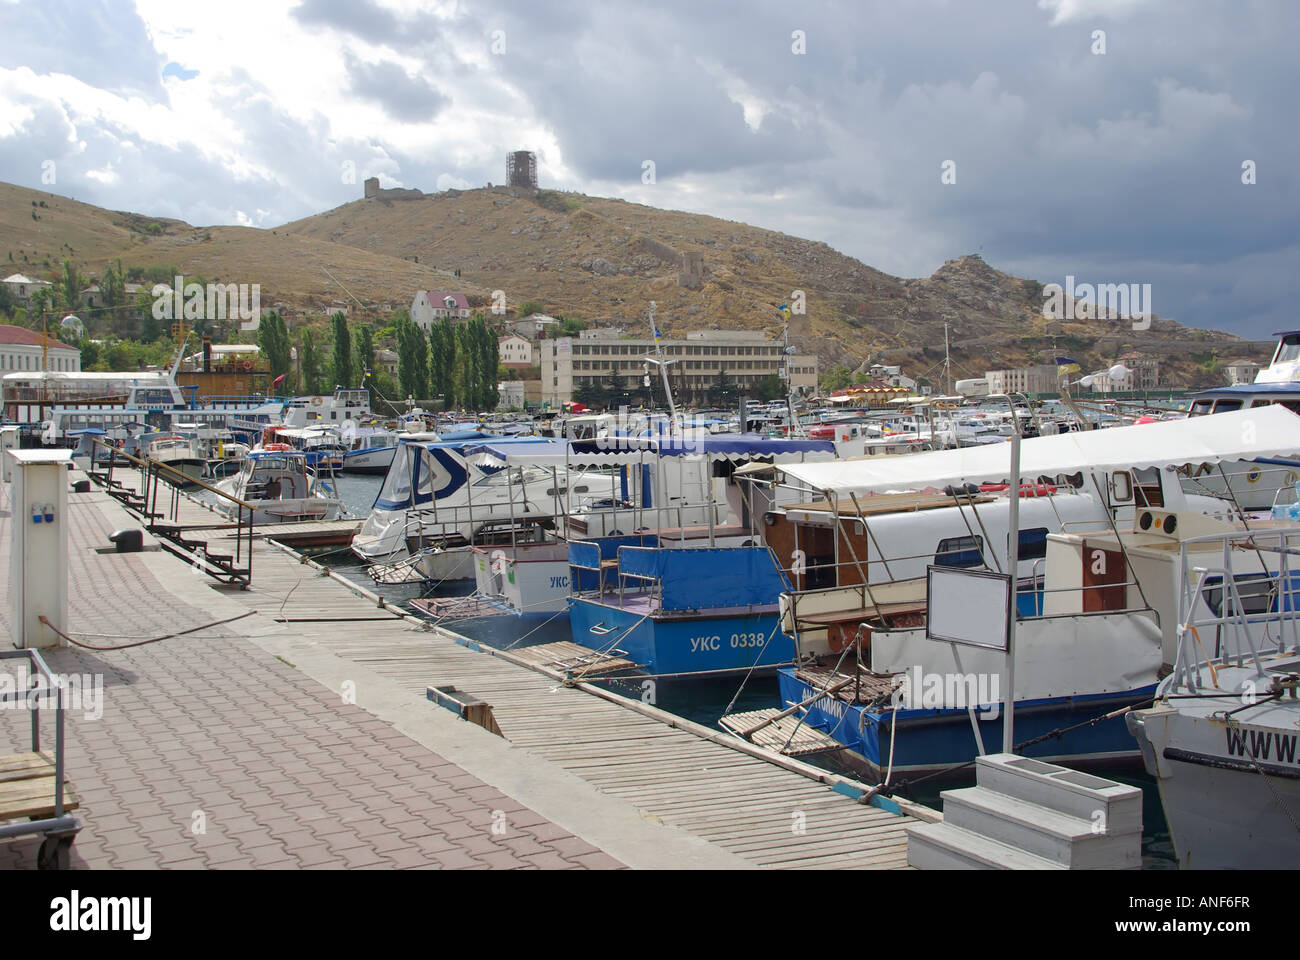 Balaclava bay harbour one time soviet nuclear submarine base motor boats beside promenade hillside and Genoese fort - Stock Image